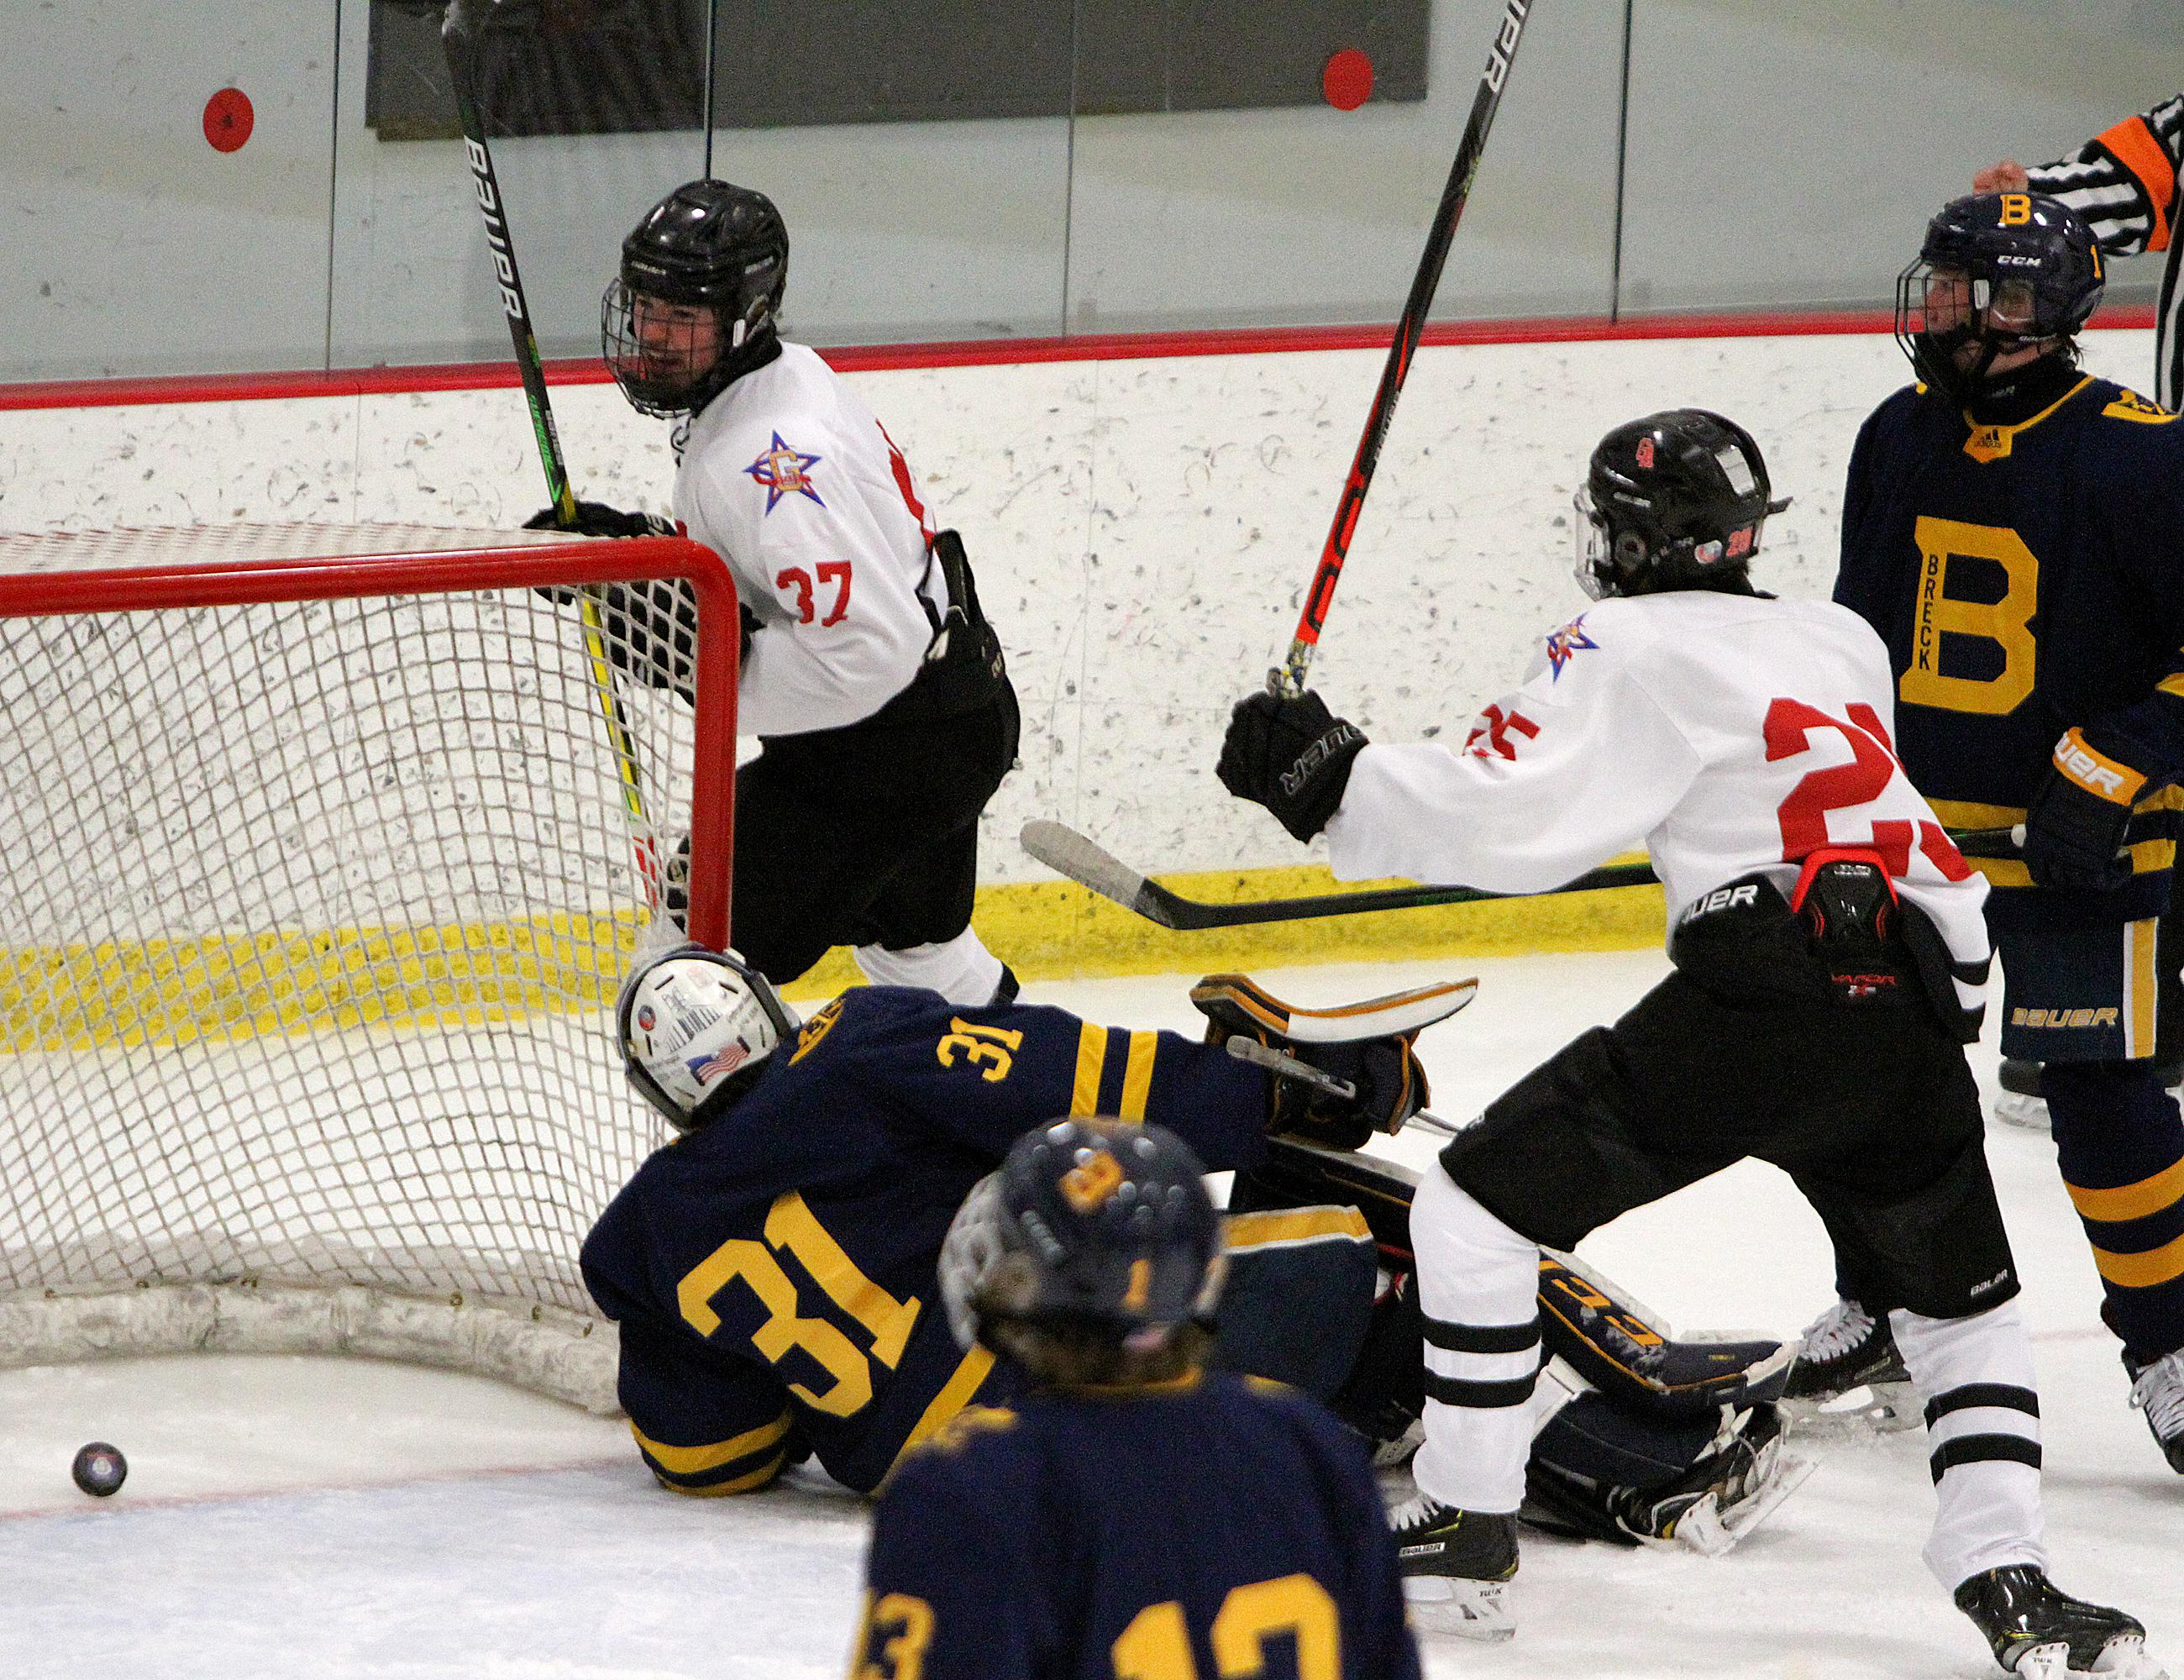 Gentry Academy senior wing Andrew Mosley scores a first-period goal as the Stars seized control of the game early. Mosley was one of six forwards on the top three lines making their varsity debut. Photo by Drew Herron, SportsEngine